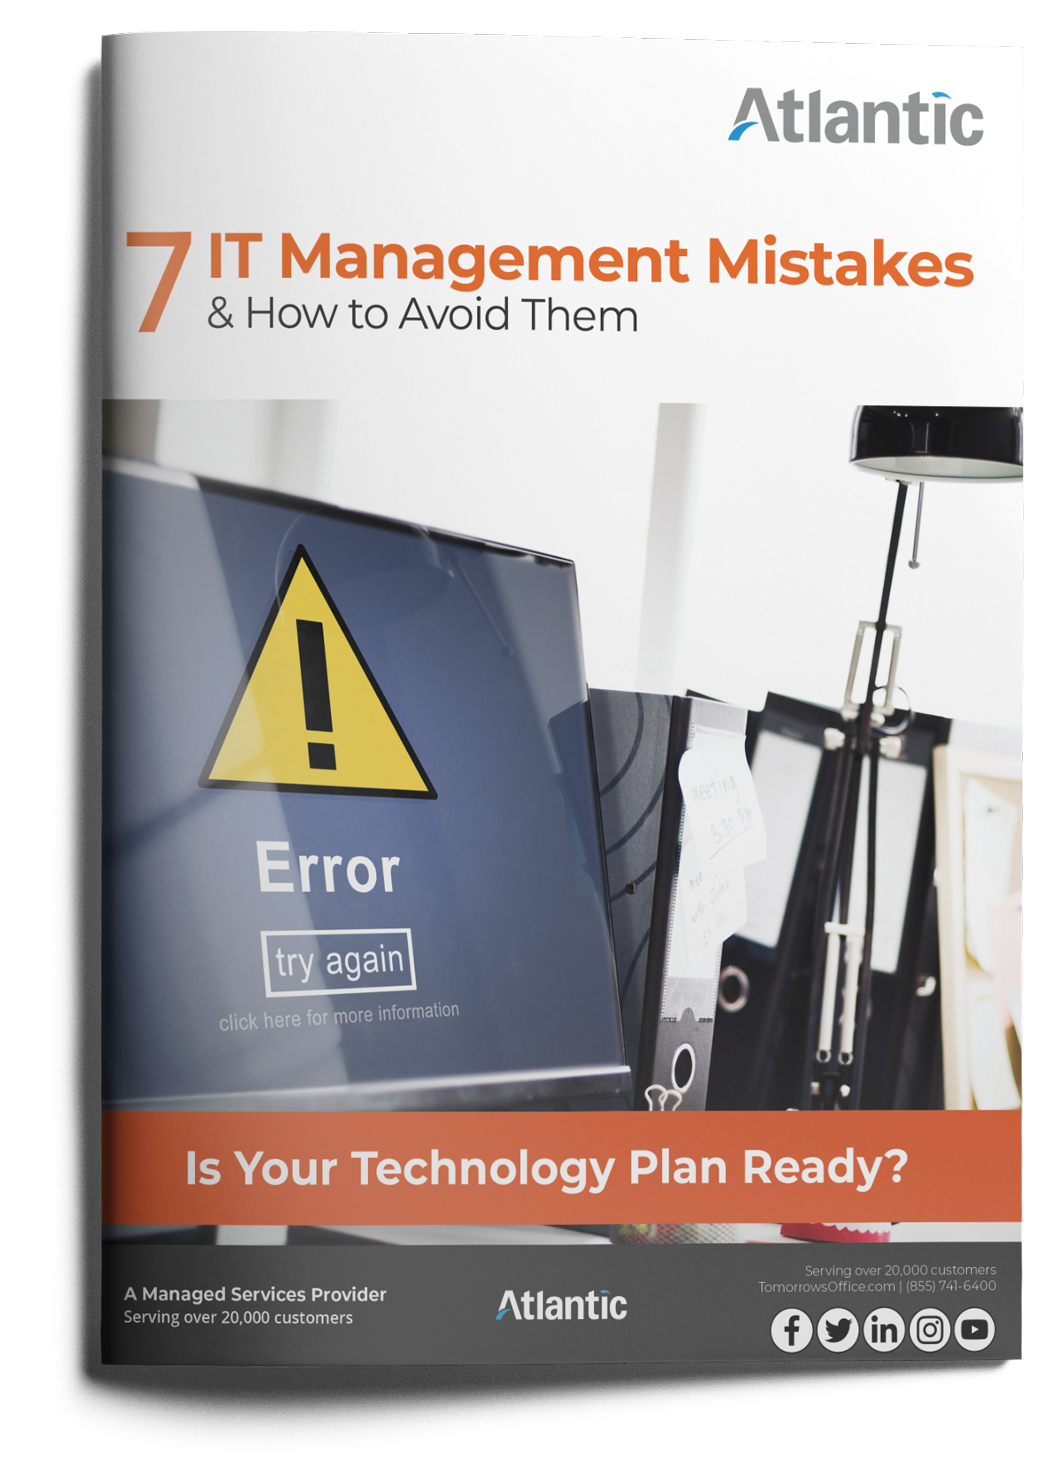 7 IT management mistakes and how to avoid them ebook cover with text. Is your technology plan ready?